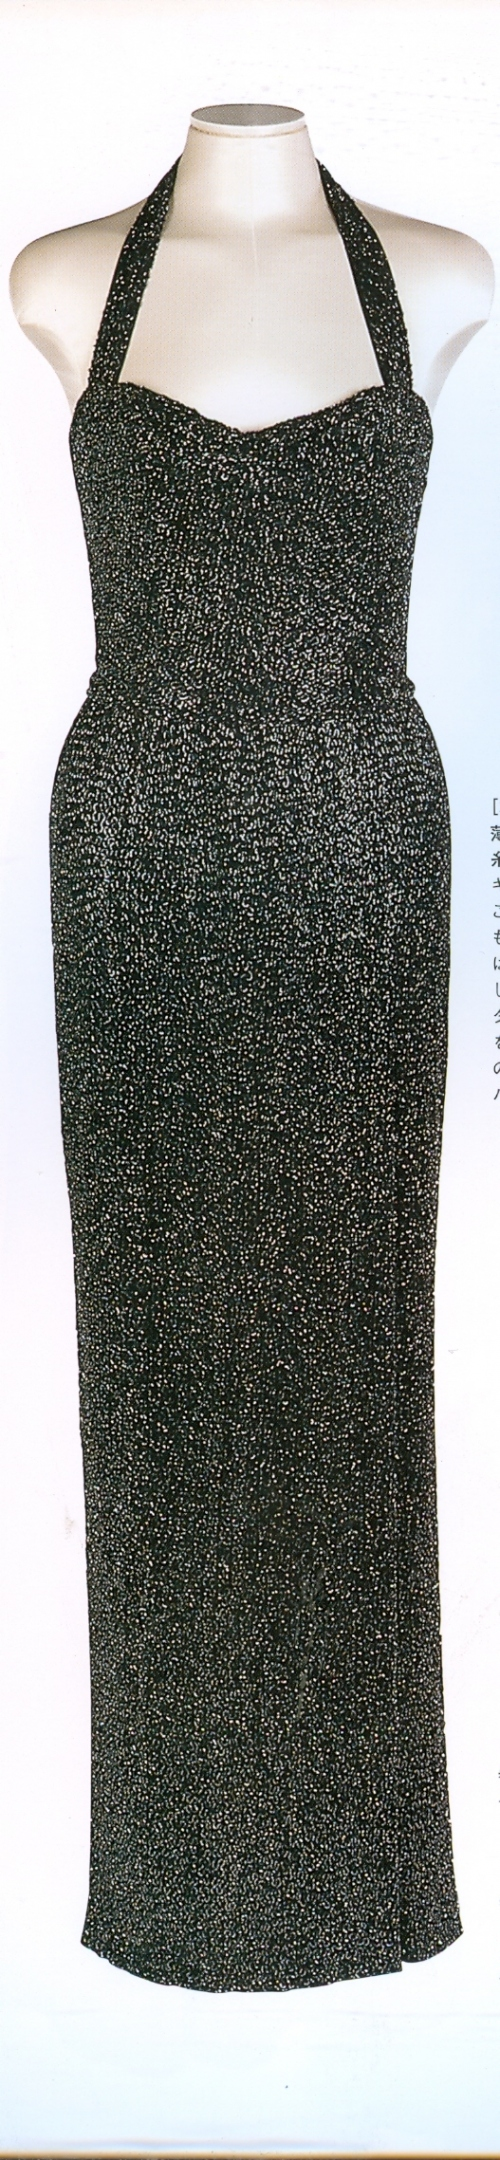 Jacques Azagury Black Crystal Sequin Gown. I saw this dress at Princess Diana exhibit! :)